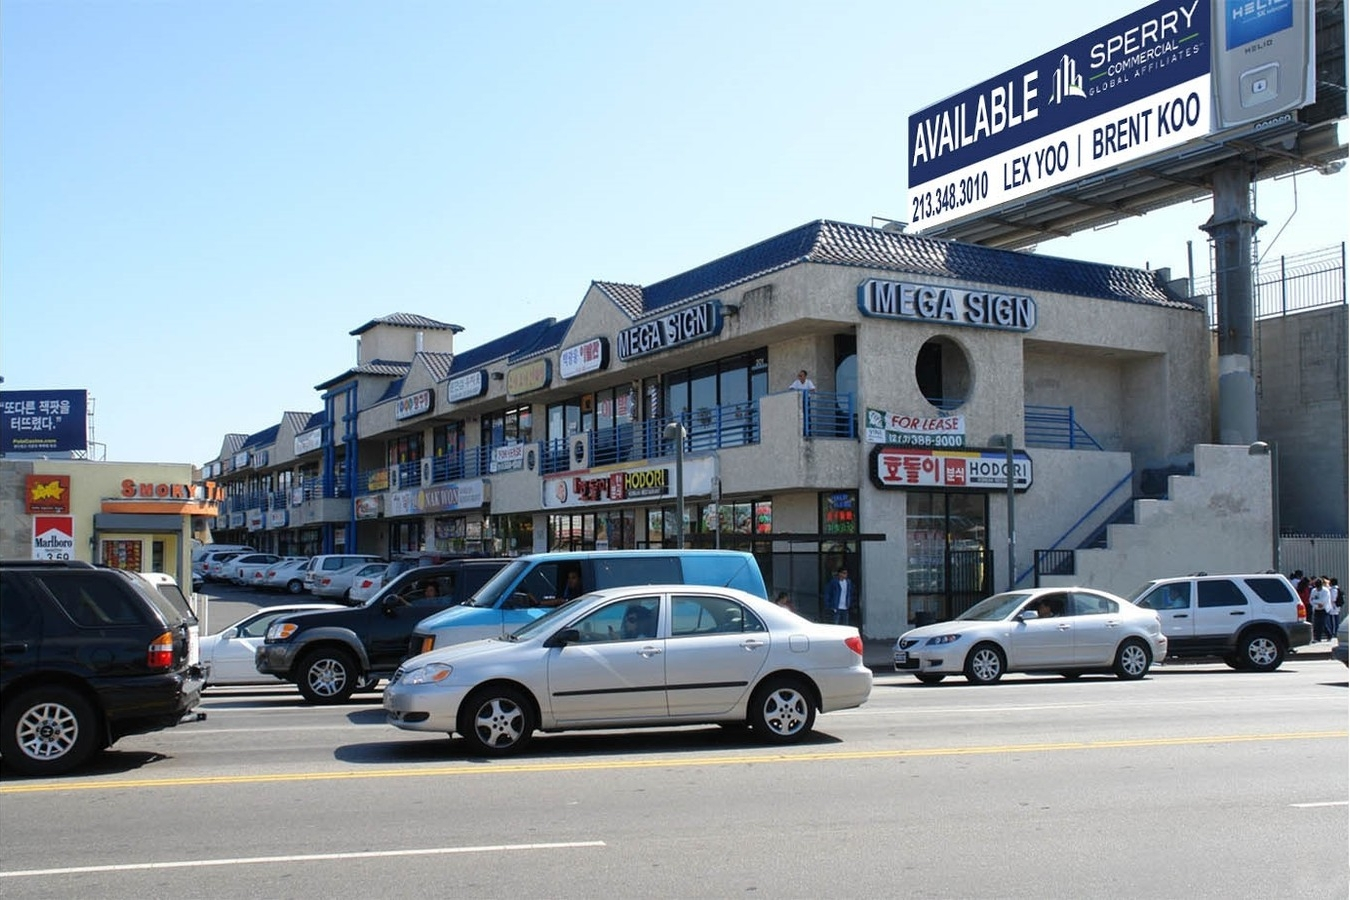 1001 South Vermont Avenue,Los Angeles, CA 90006 - LEASE RATE: $ 2.00/ SF/ +NNNGLA: +/- 23,612 SF- High Traffic Corner Retail Plaza in Koreatown.- On-site Security.- Large Parking Lot.